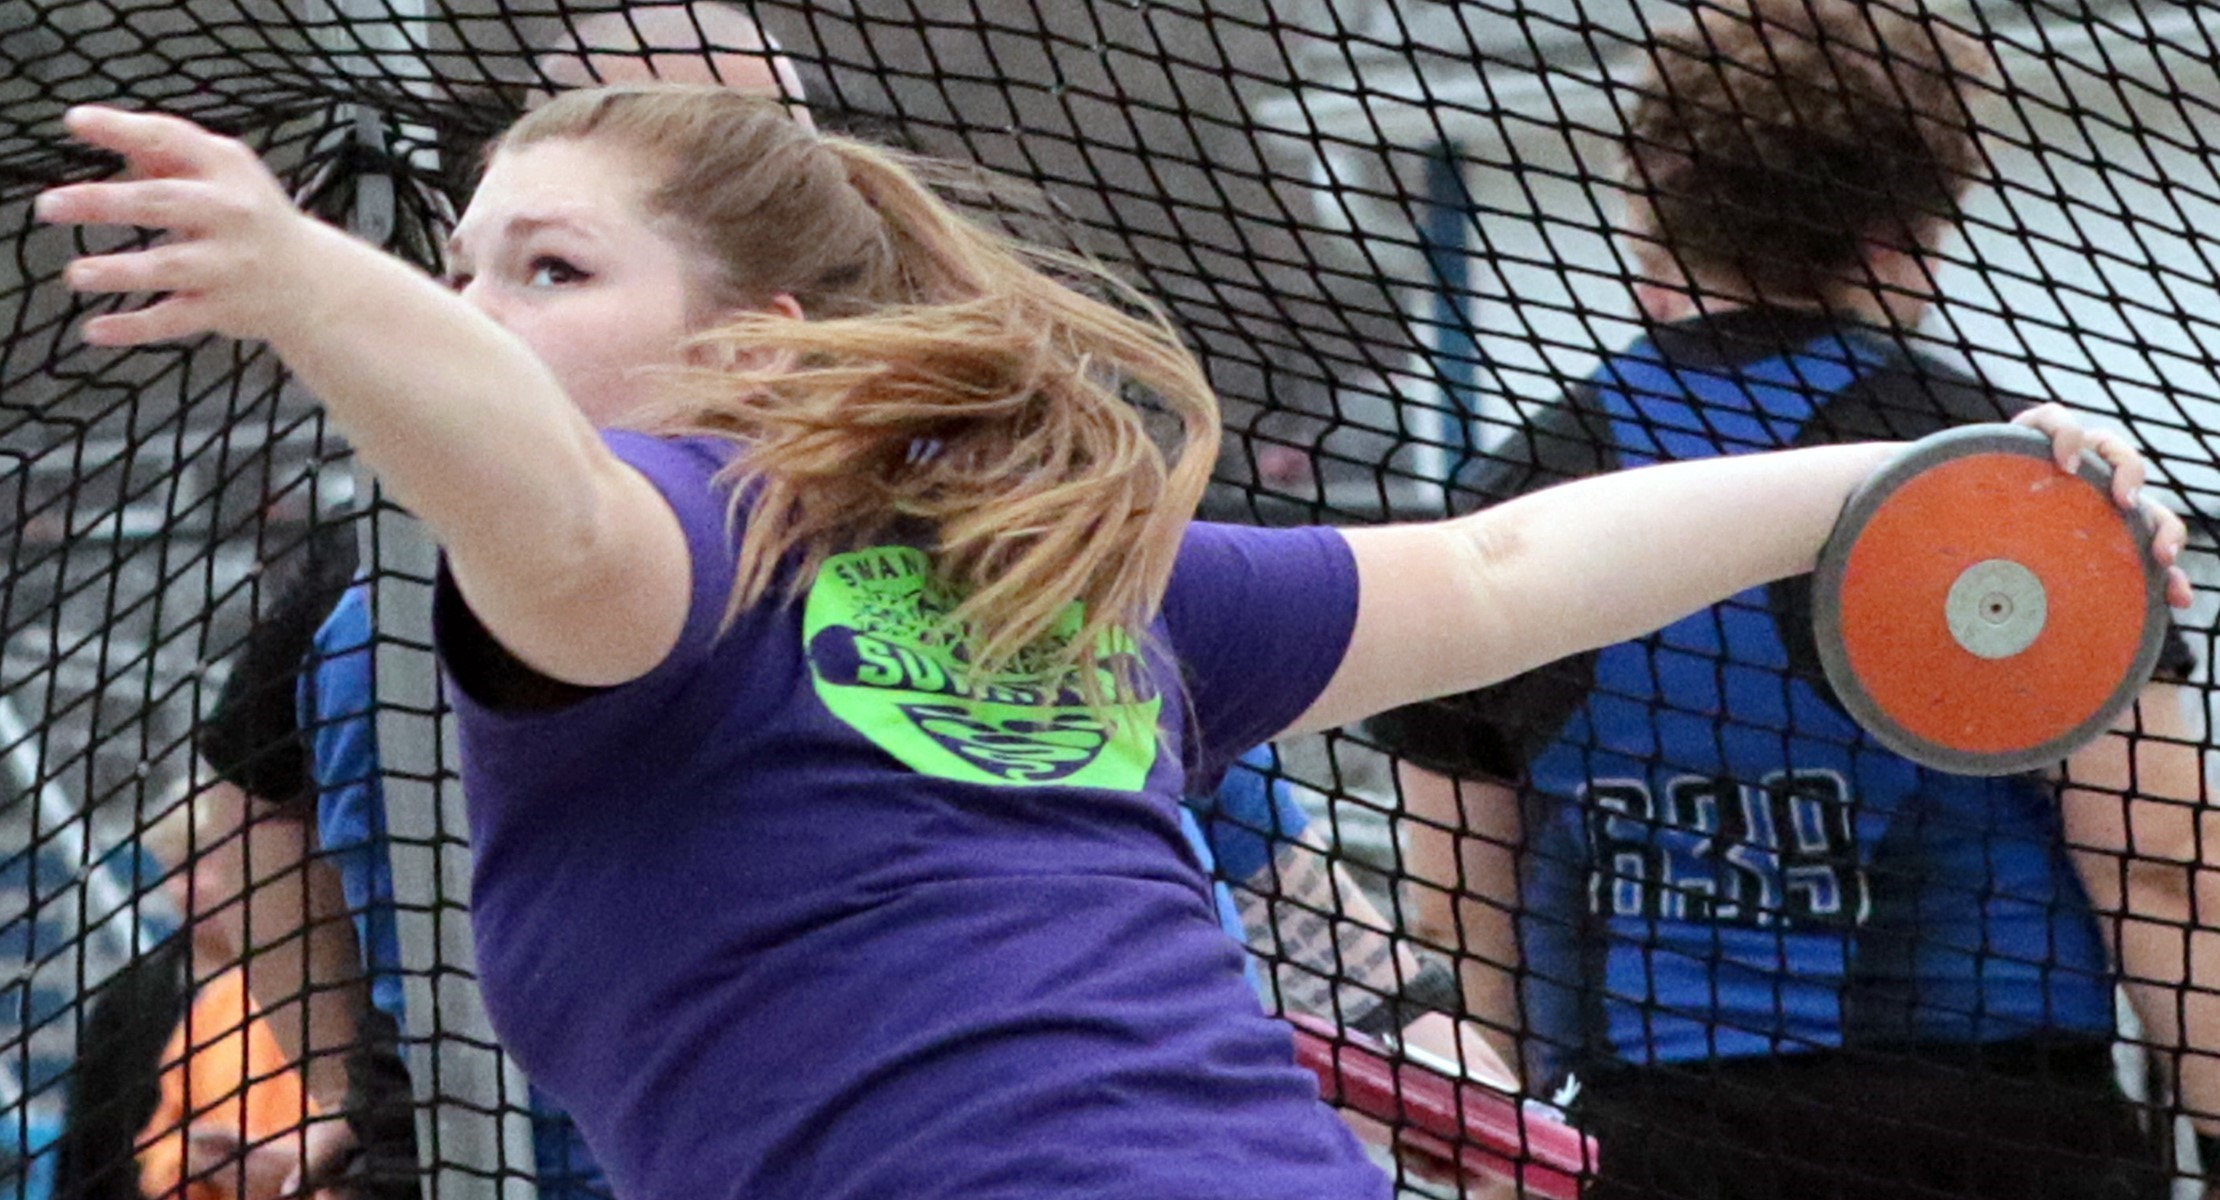 Girl in purple shirt throwing the discus